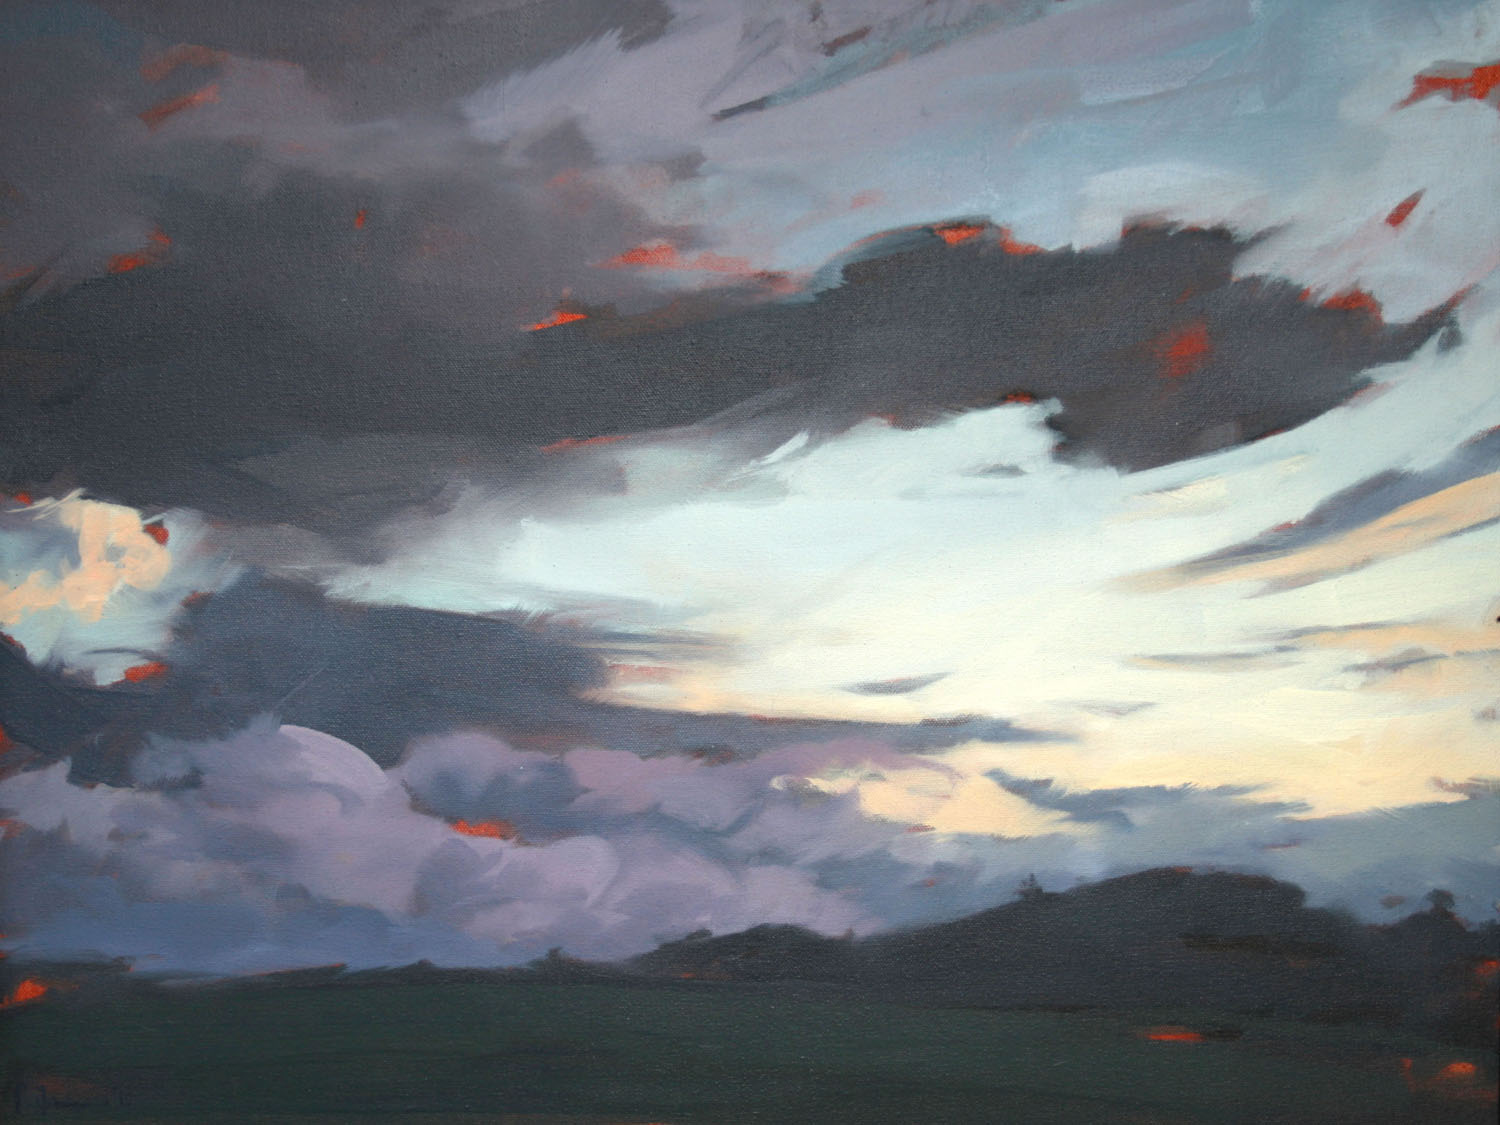 Tracey Quinn_2011_Audleystown_oil on canvas_45 x 60cm.jpg